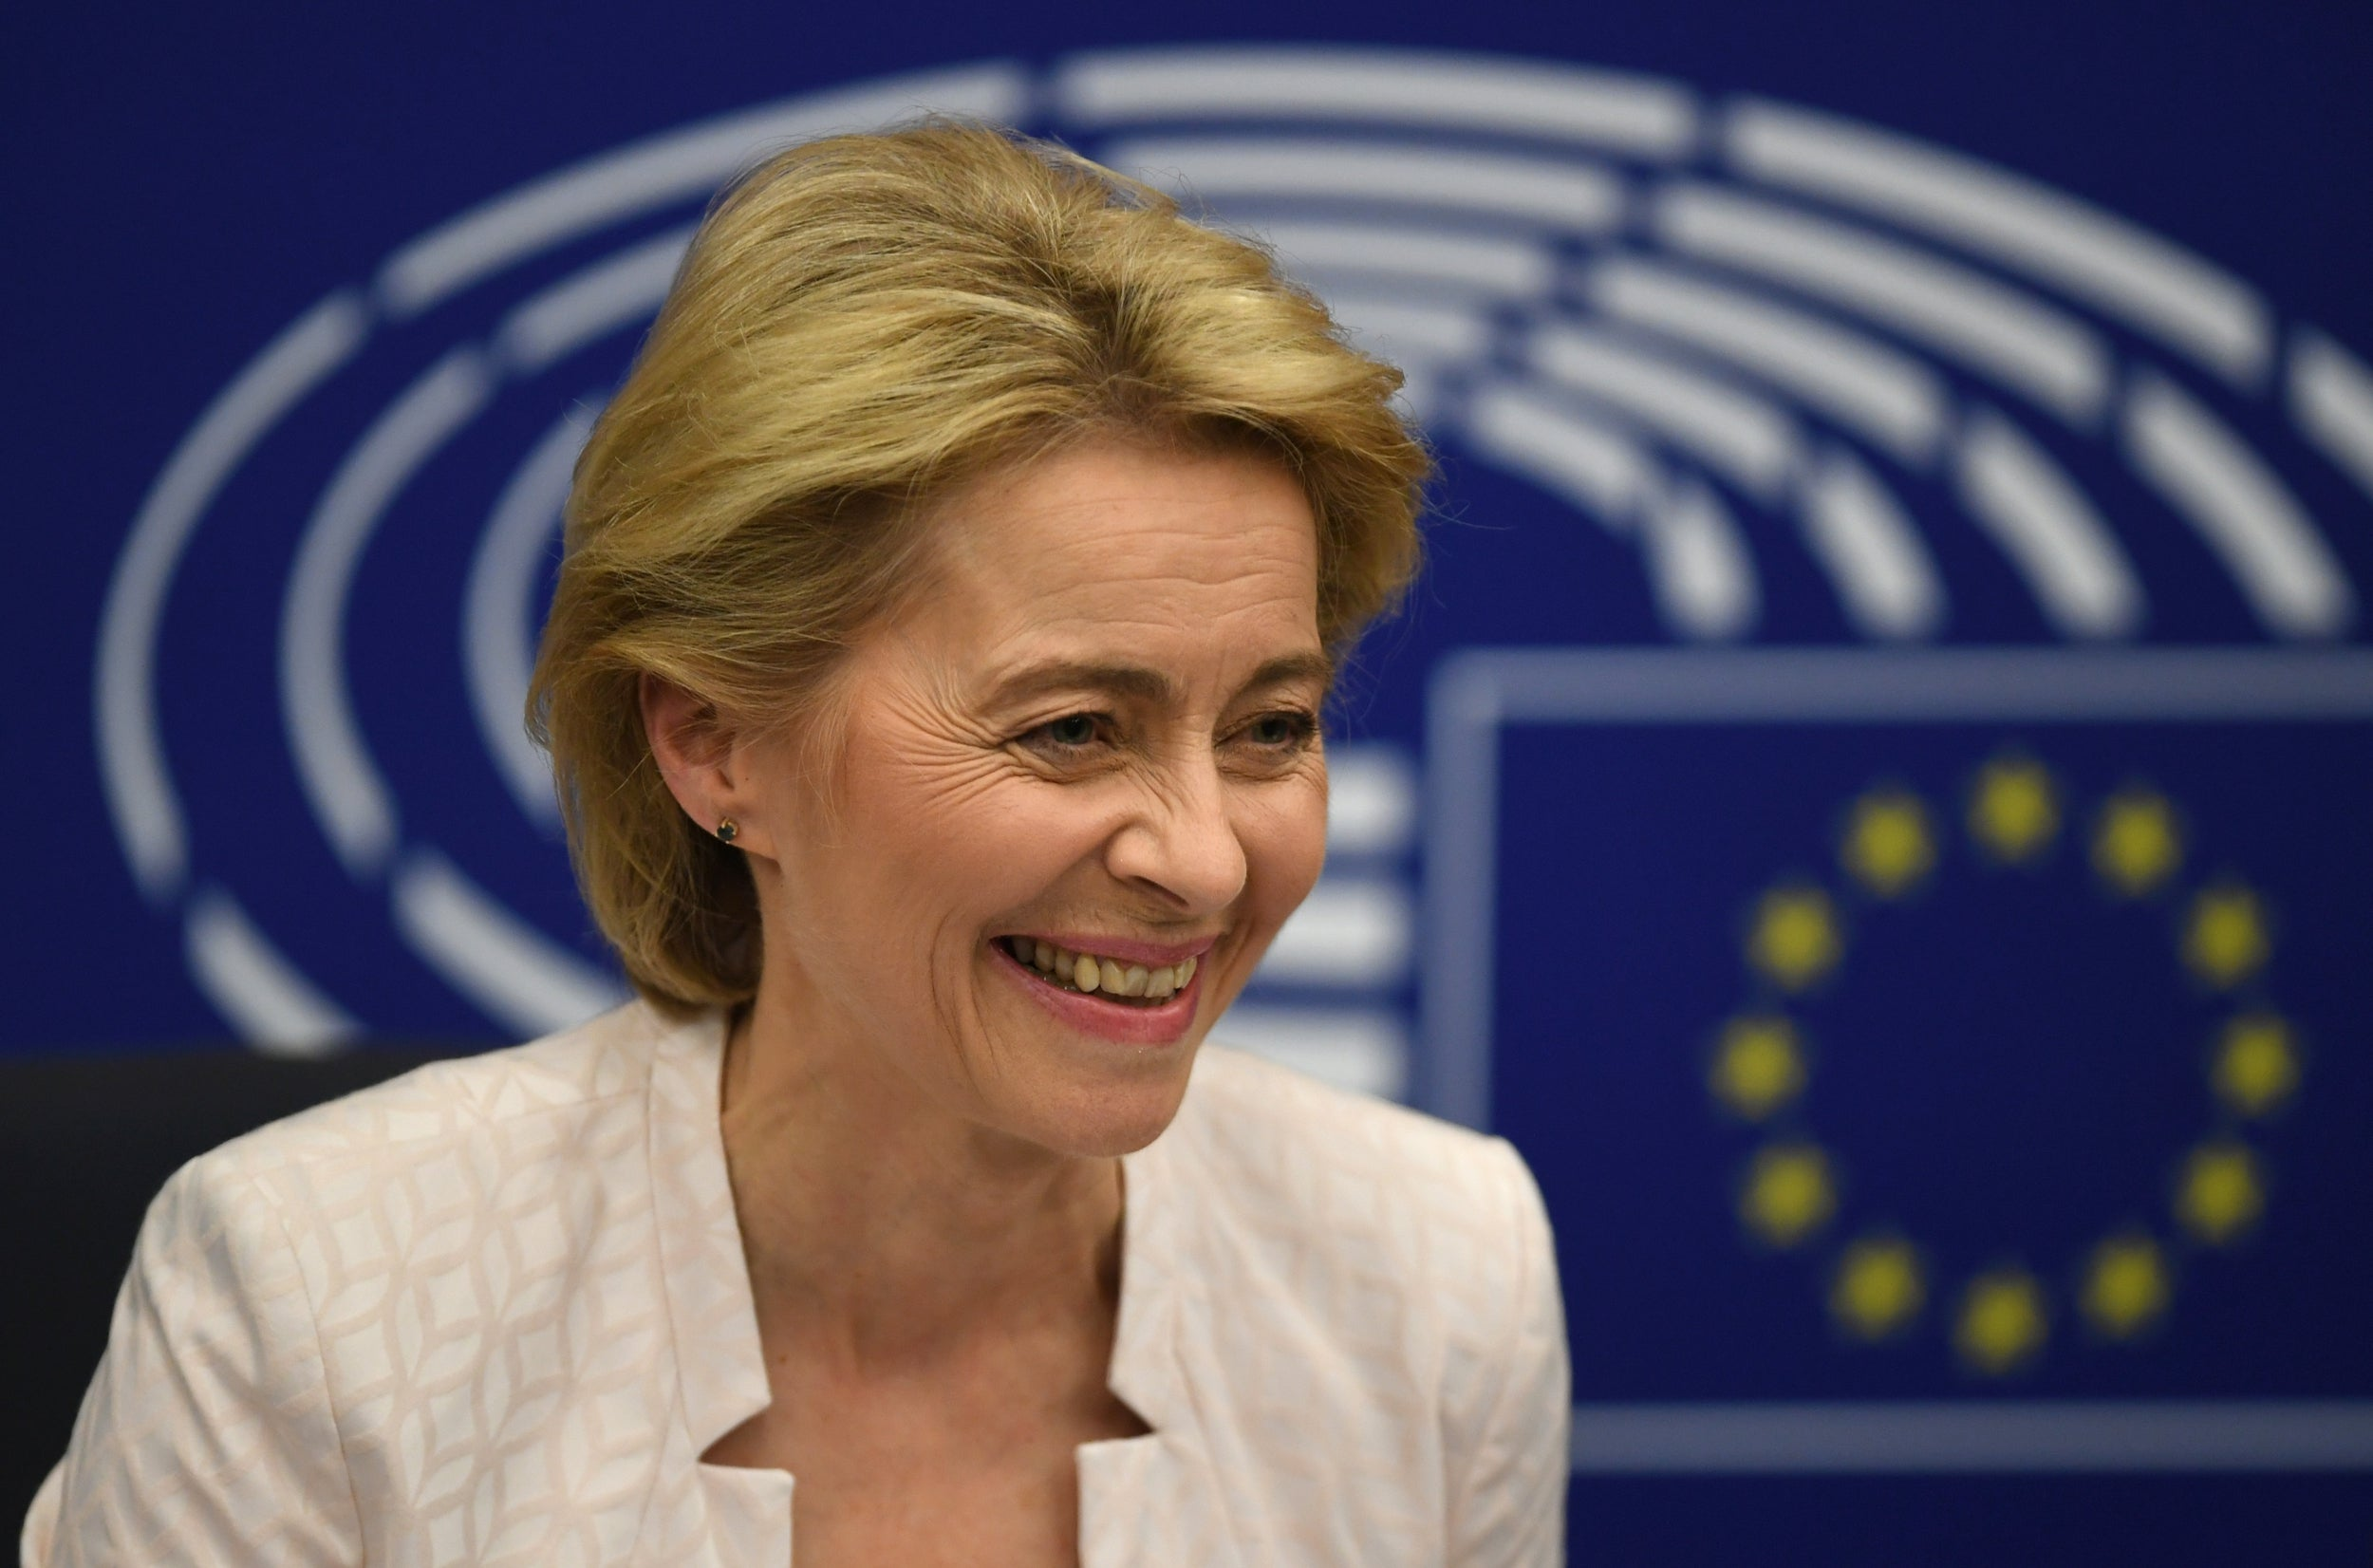 Ursula von der Leyen: Who is the first woman president of the EU commission? 6